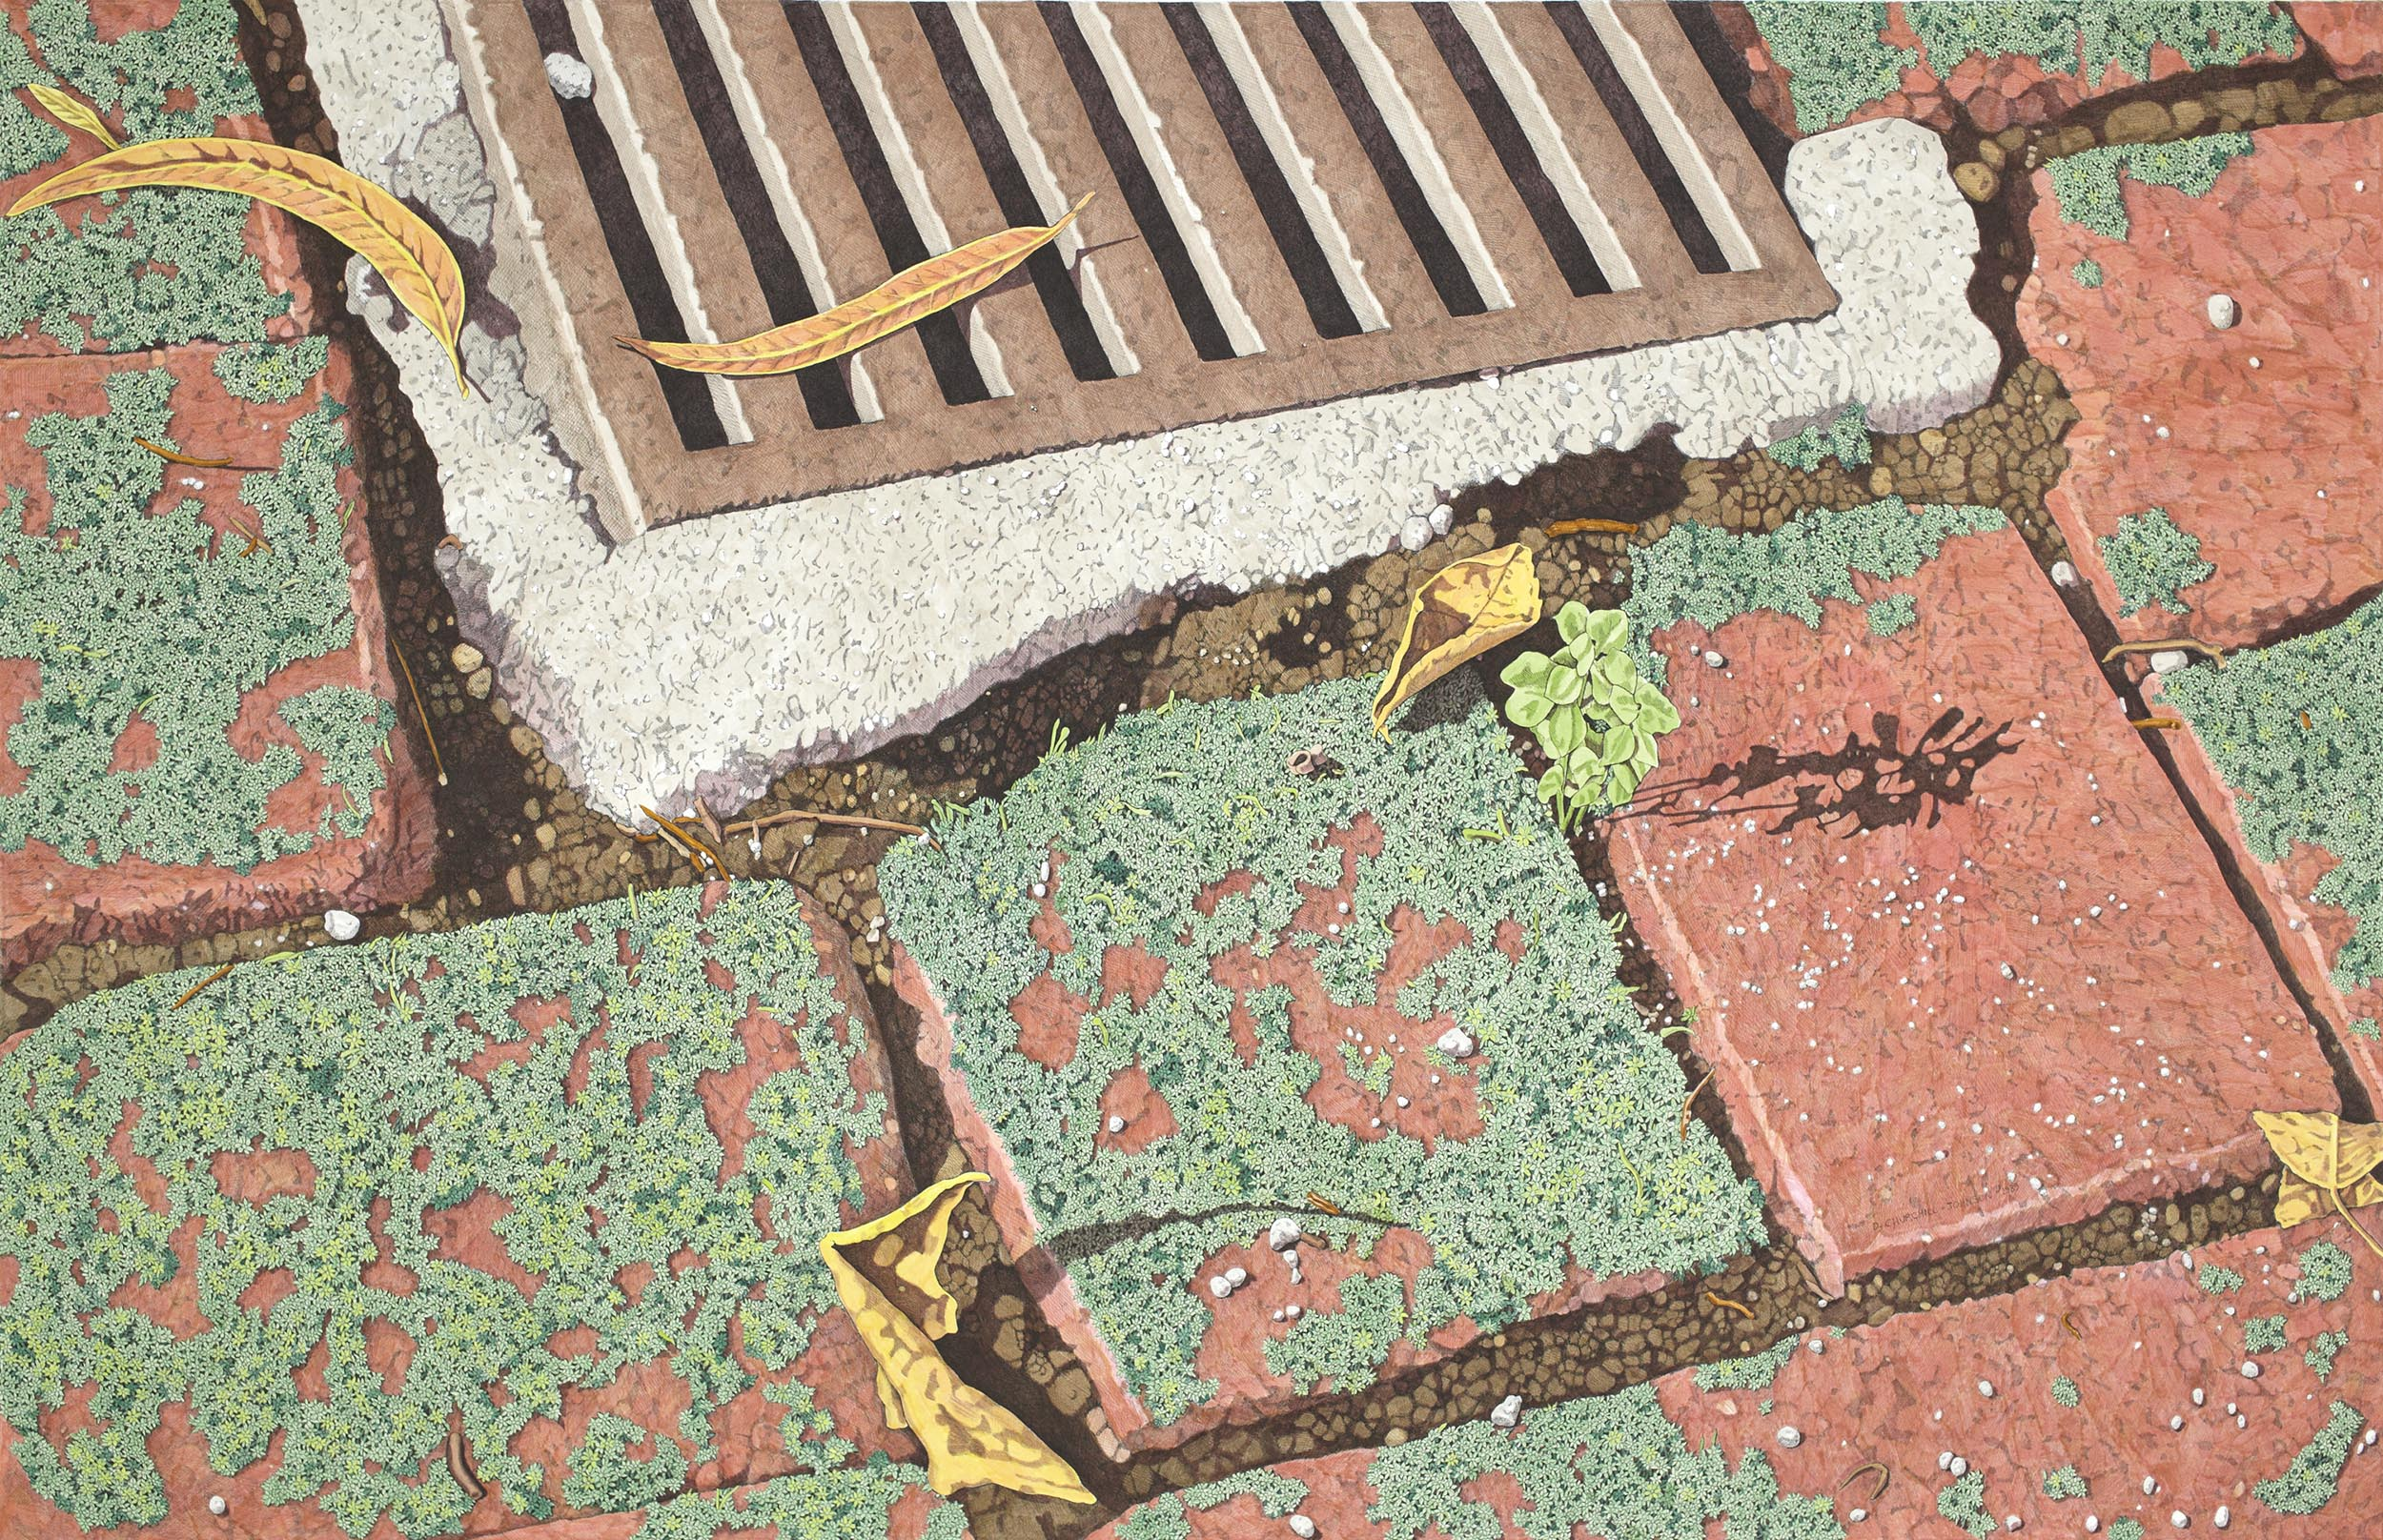 The Garden Grate, 35 x 55 inches